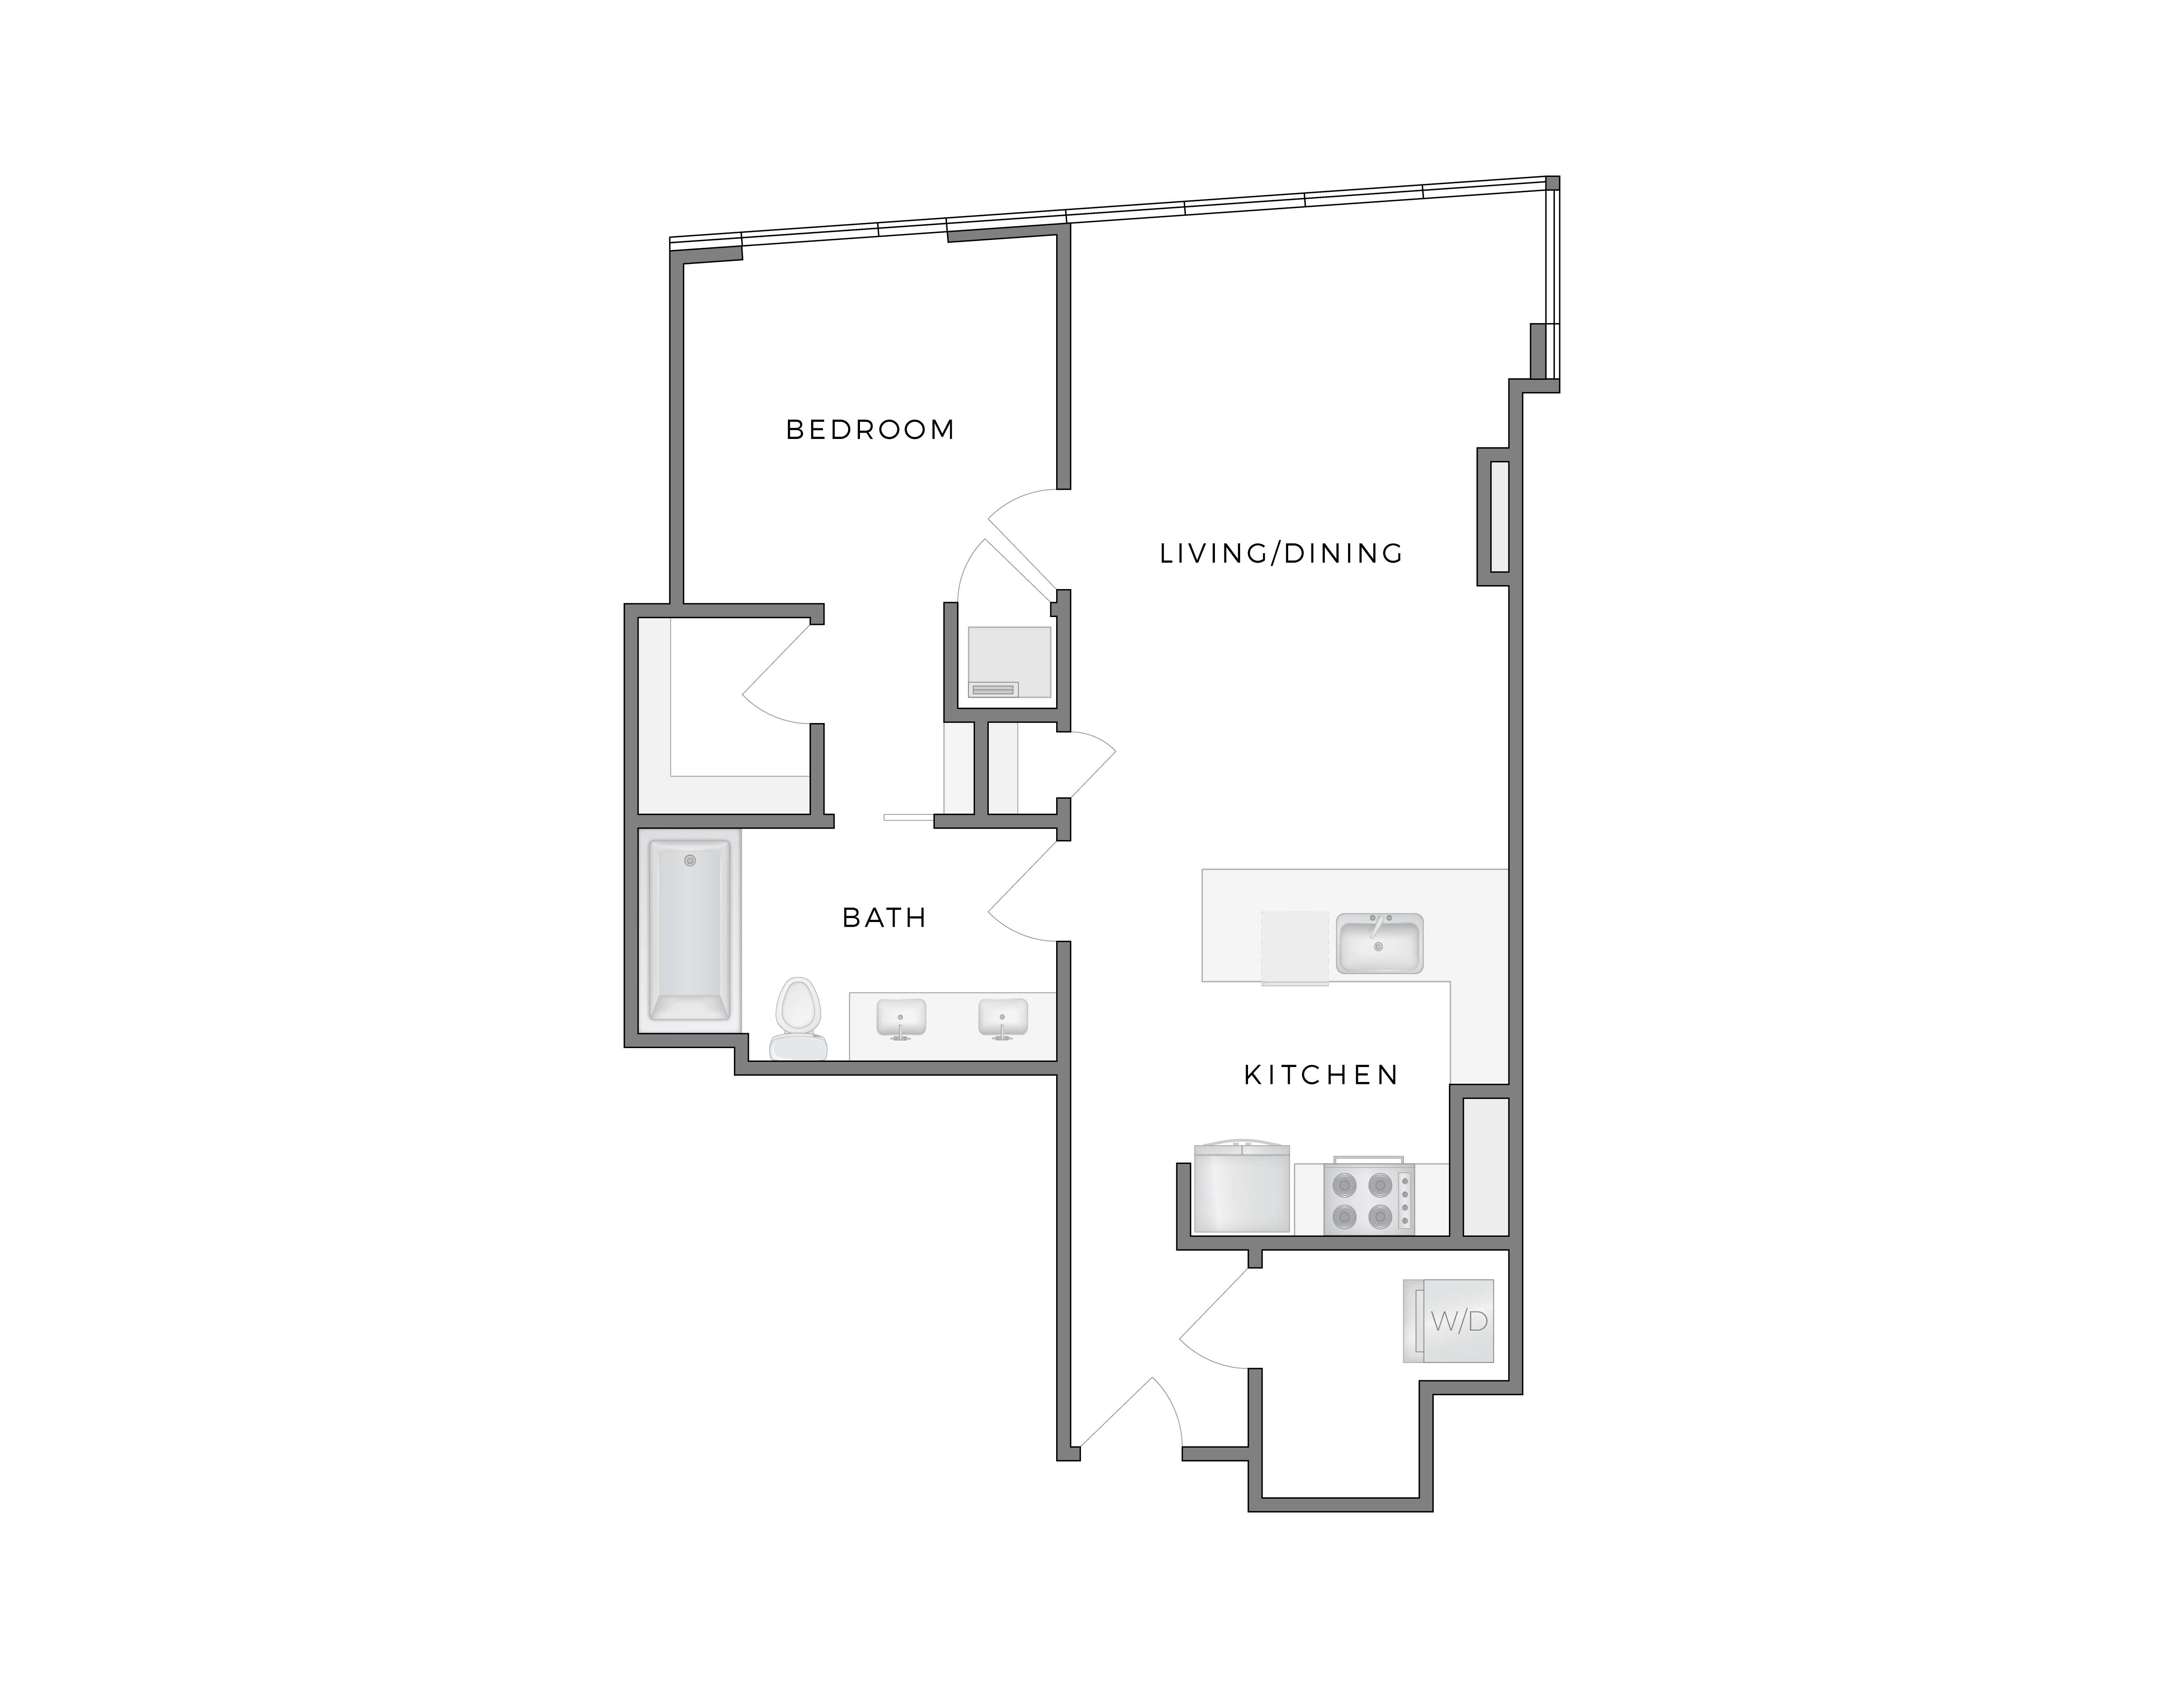 Atelier Rothko 3 apartment floorplan diagram with one bedroom, one bathroom, kitchen, and living dining area